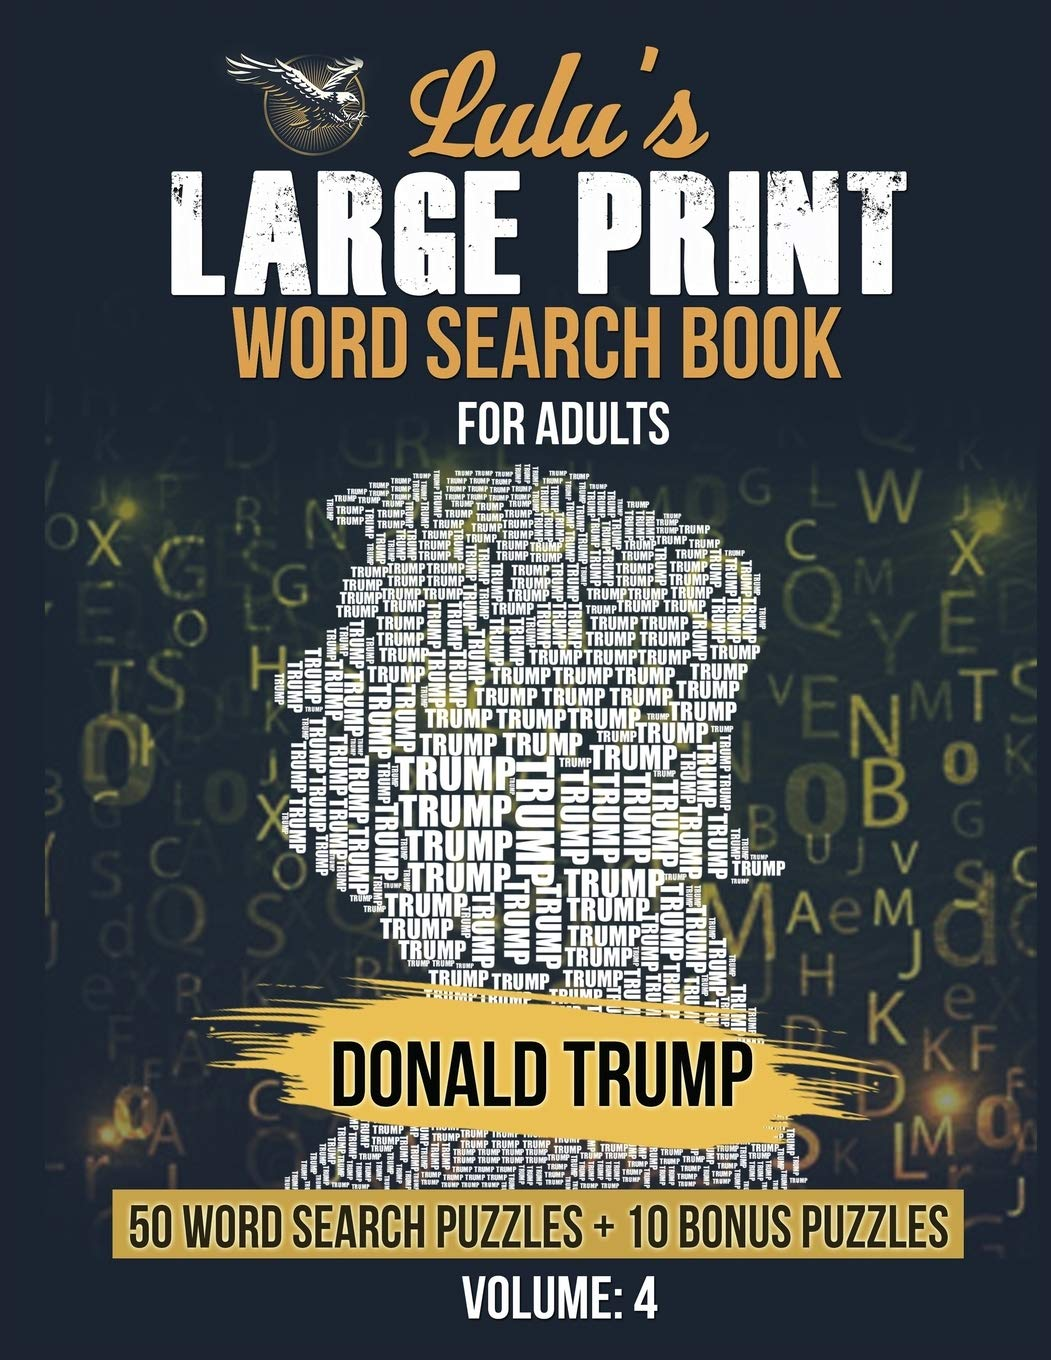 - Lulu's Large Print Word Search Book For Adults - Donald Trump: 50